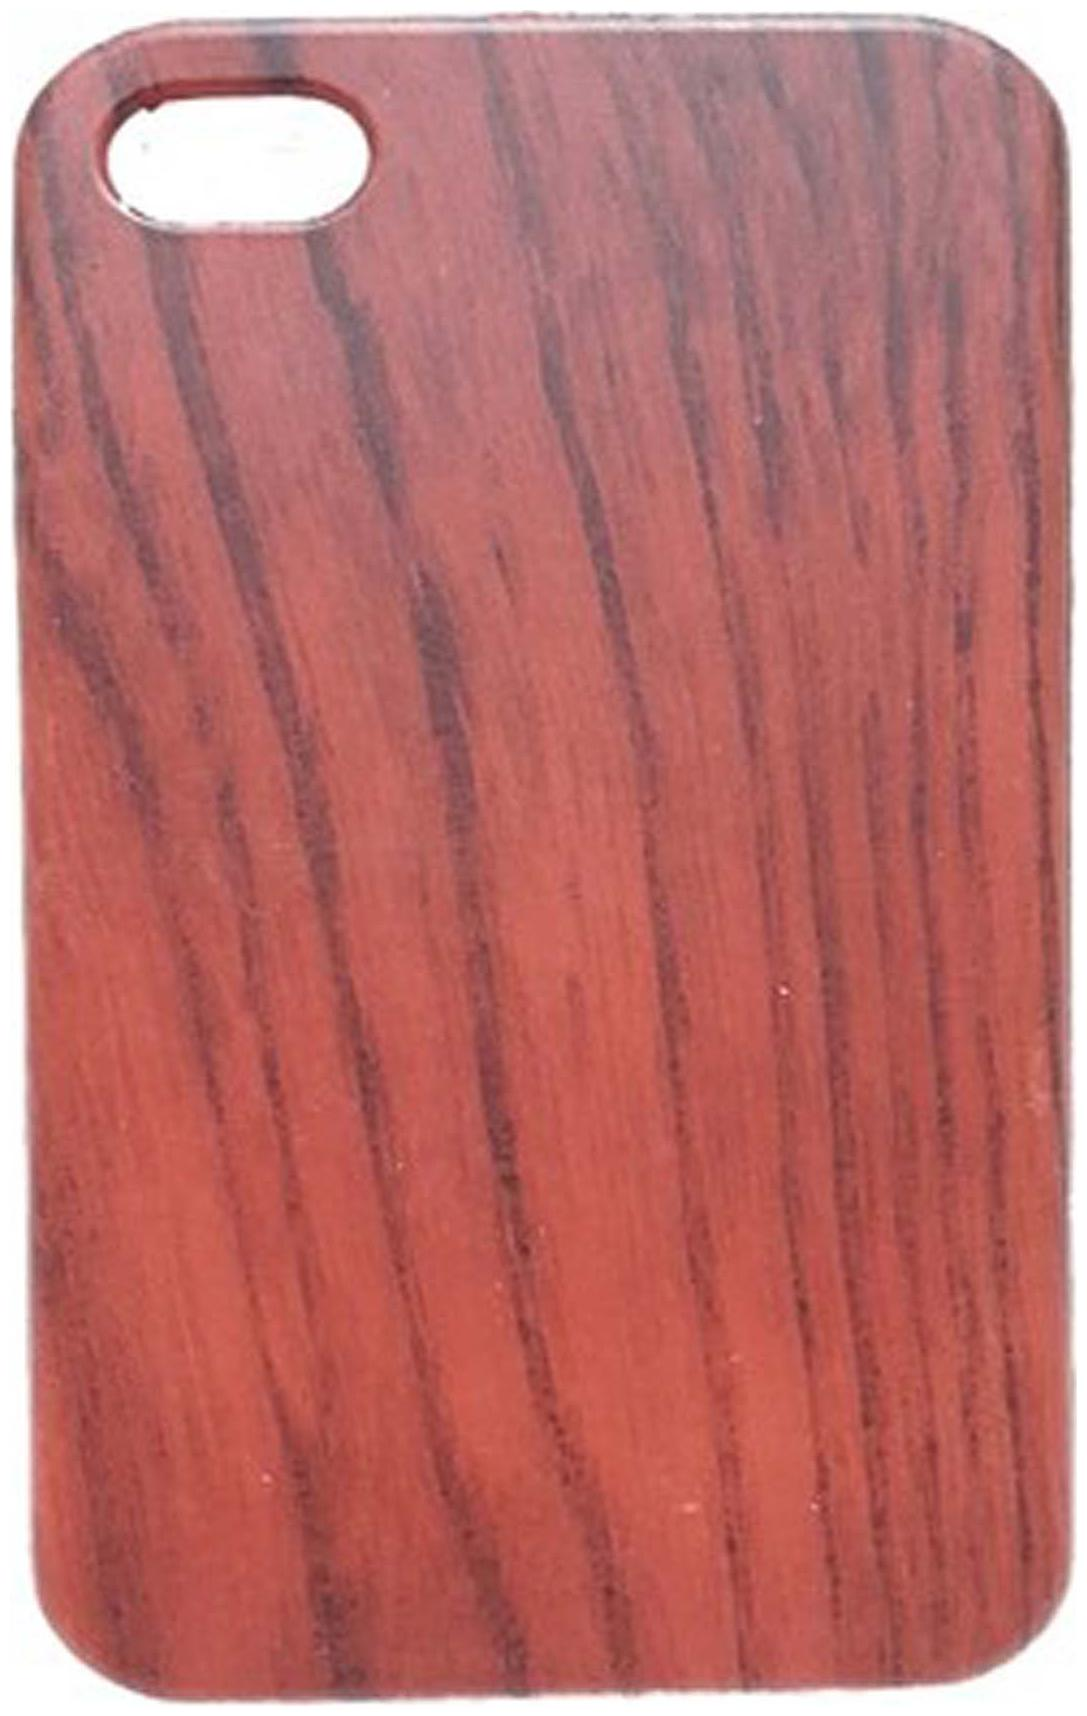 Iway Back Cover For iPhone 4/ 4s  Brown  by I Way